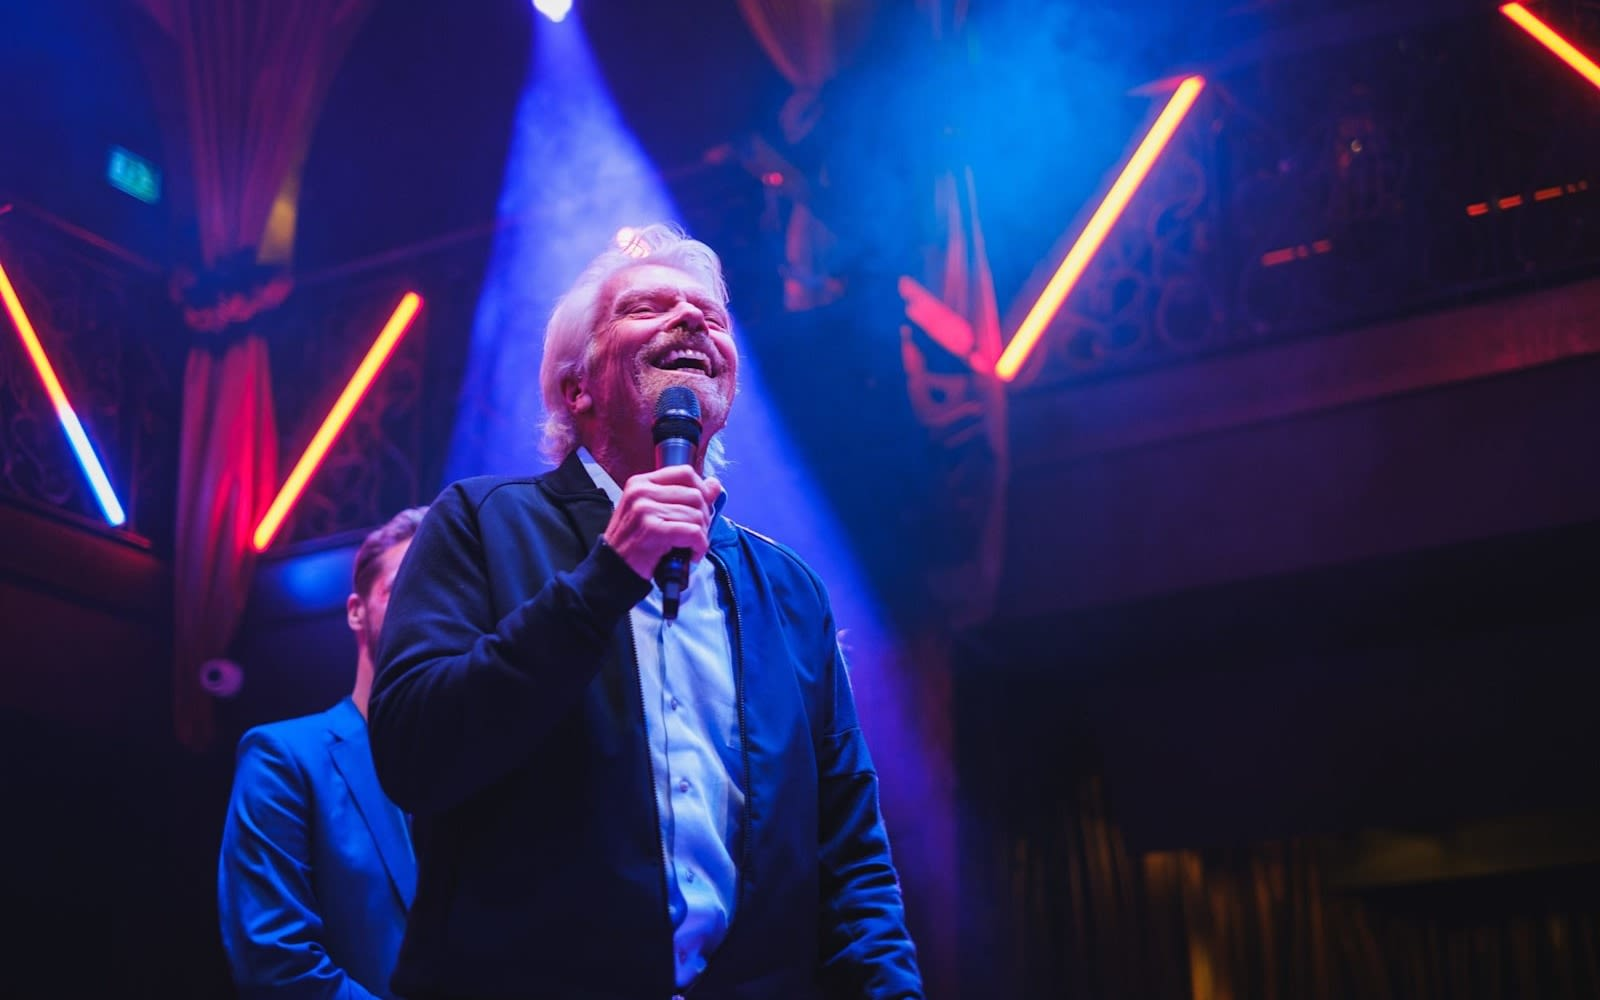 Richard Branson giving a speech at the 2019 Virgin Stars of the Year Awards